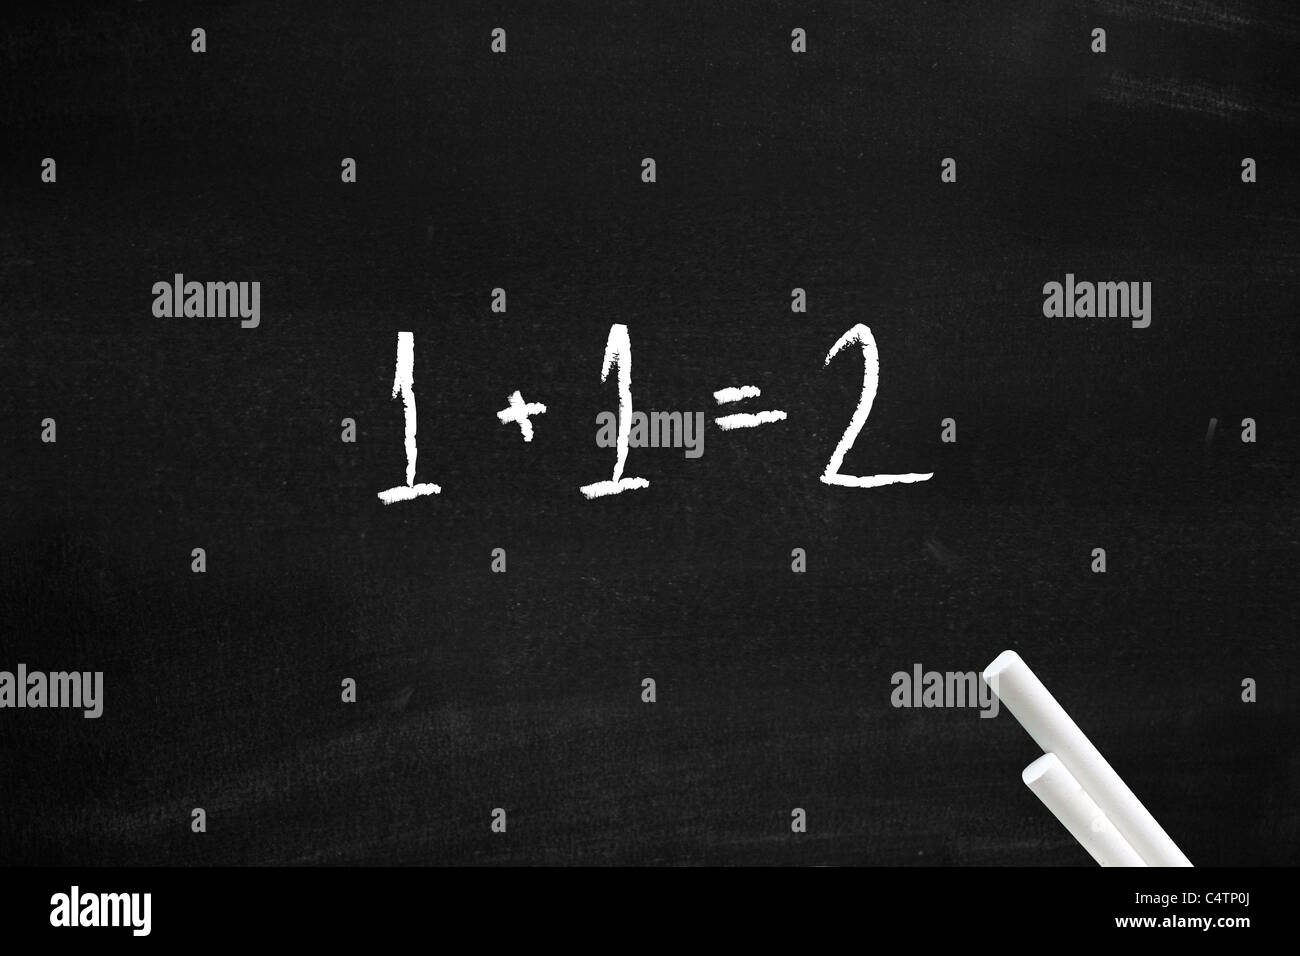 Easy maths - Stock Image